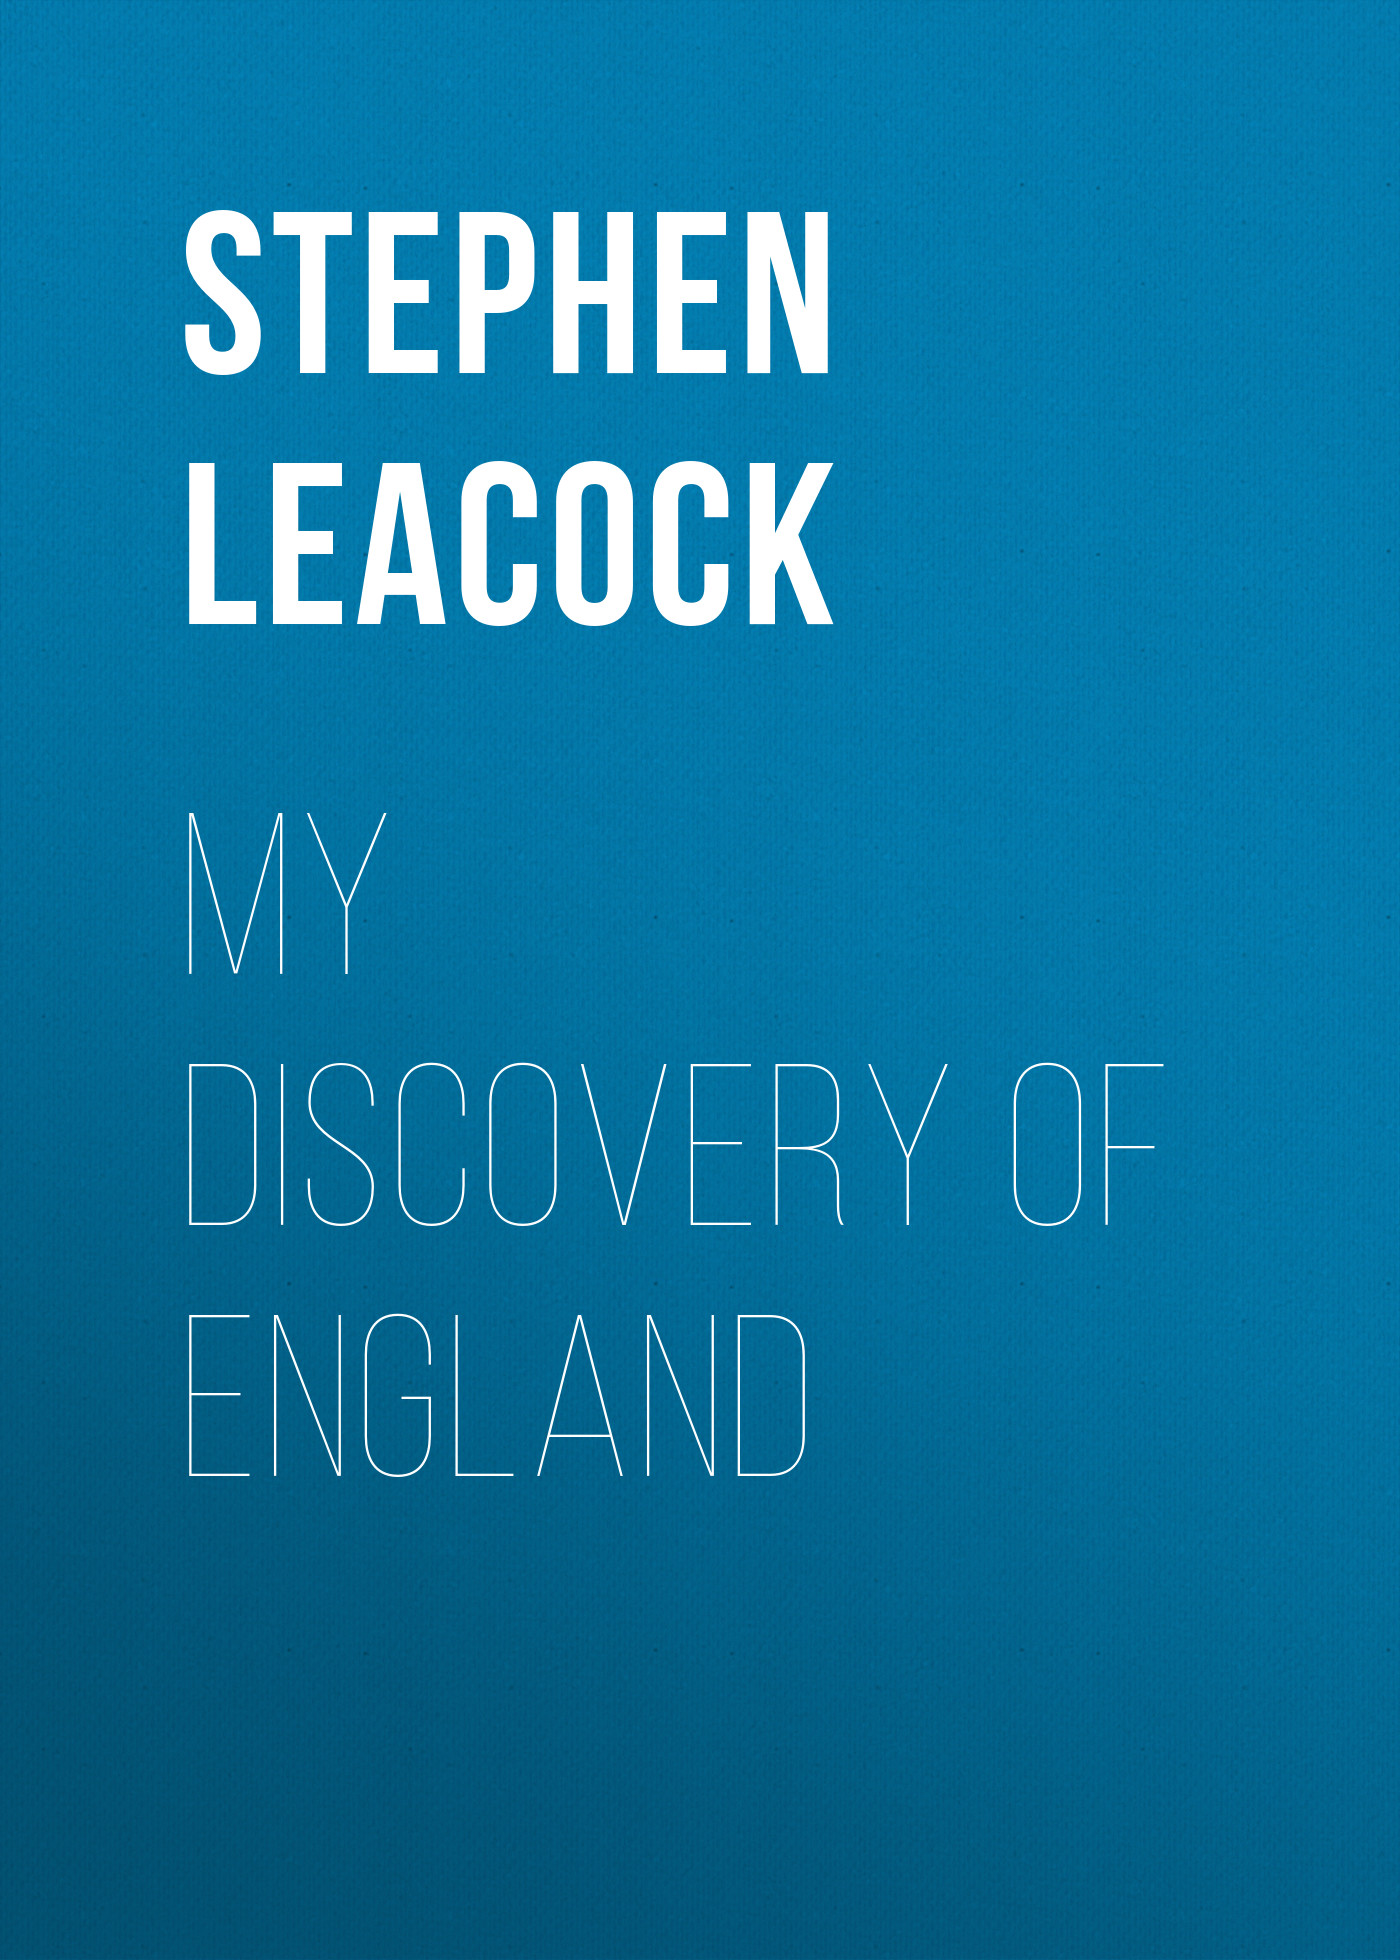 Stephen Leacock My Discovery of England stephen henry john 1787 1864 stephen s commentaries on the laws of england volume 4